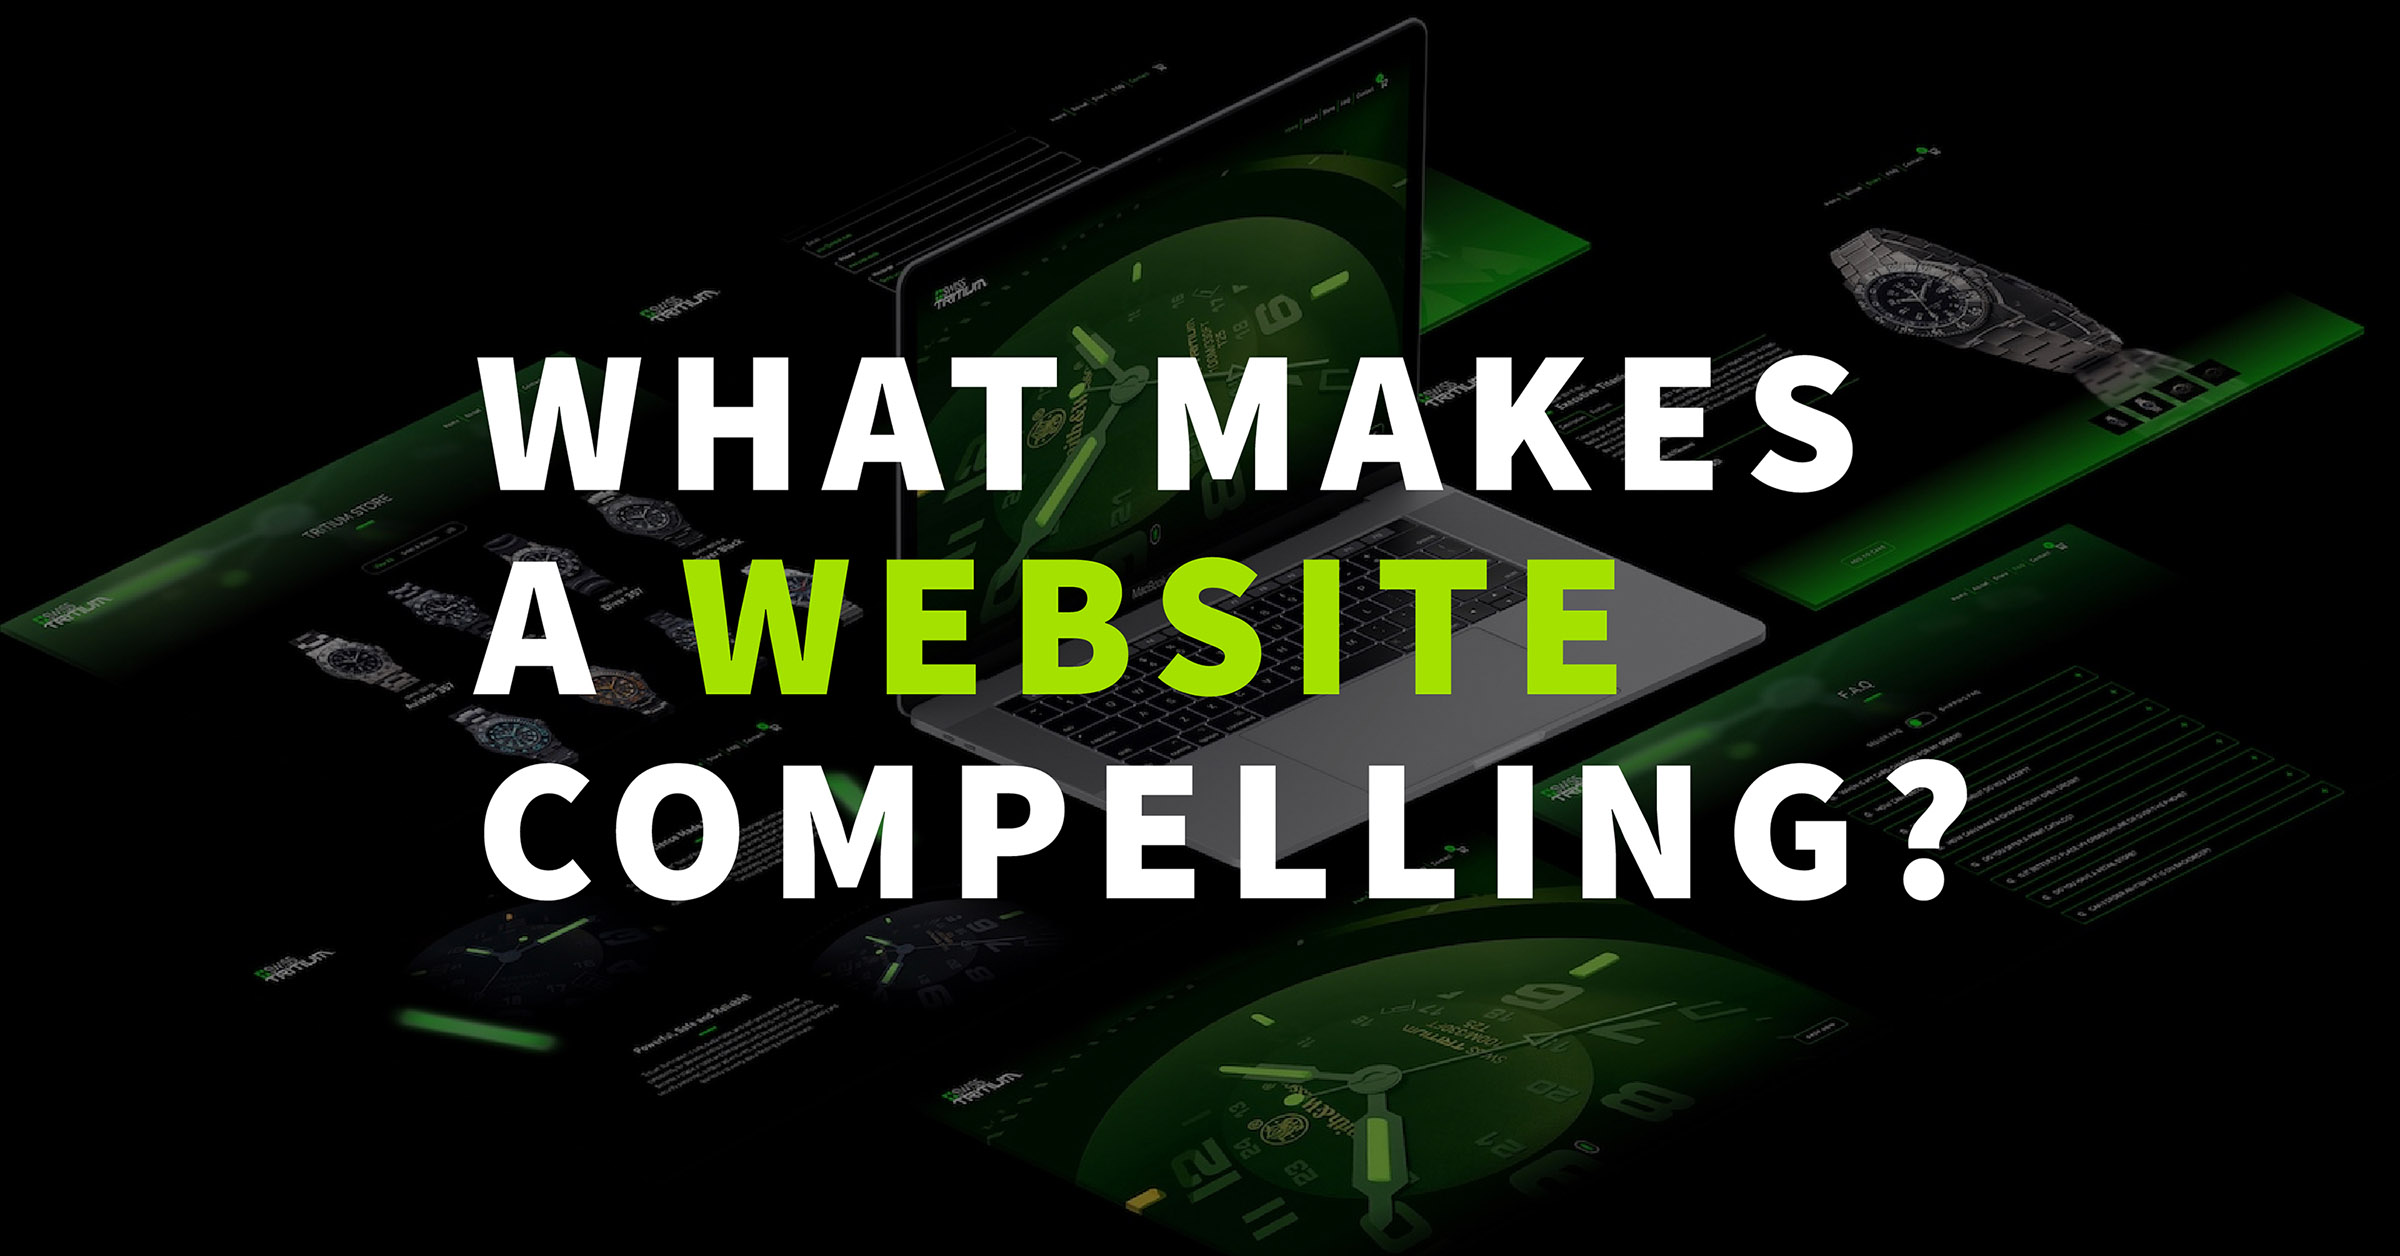 What Makes A Website Compelling?